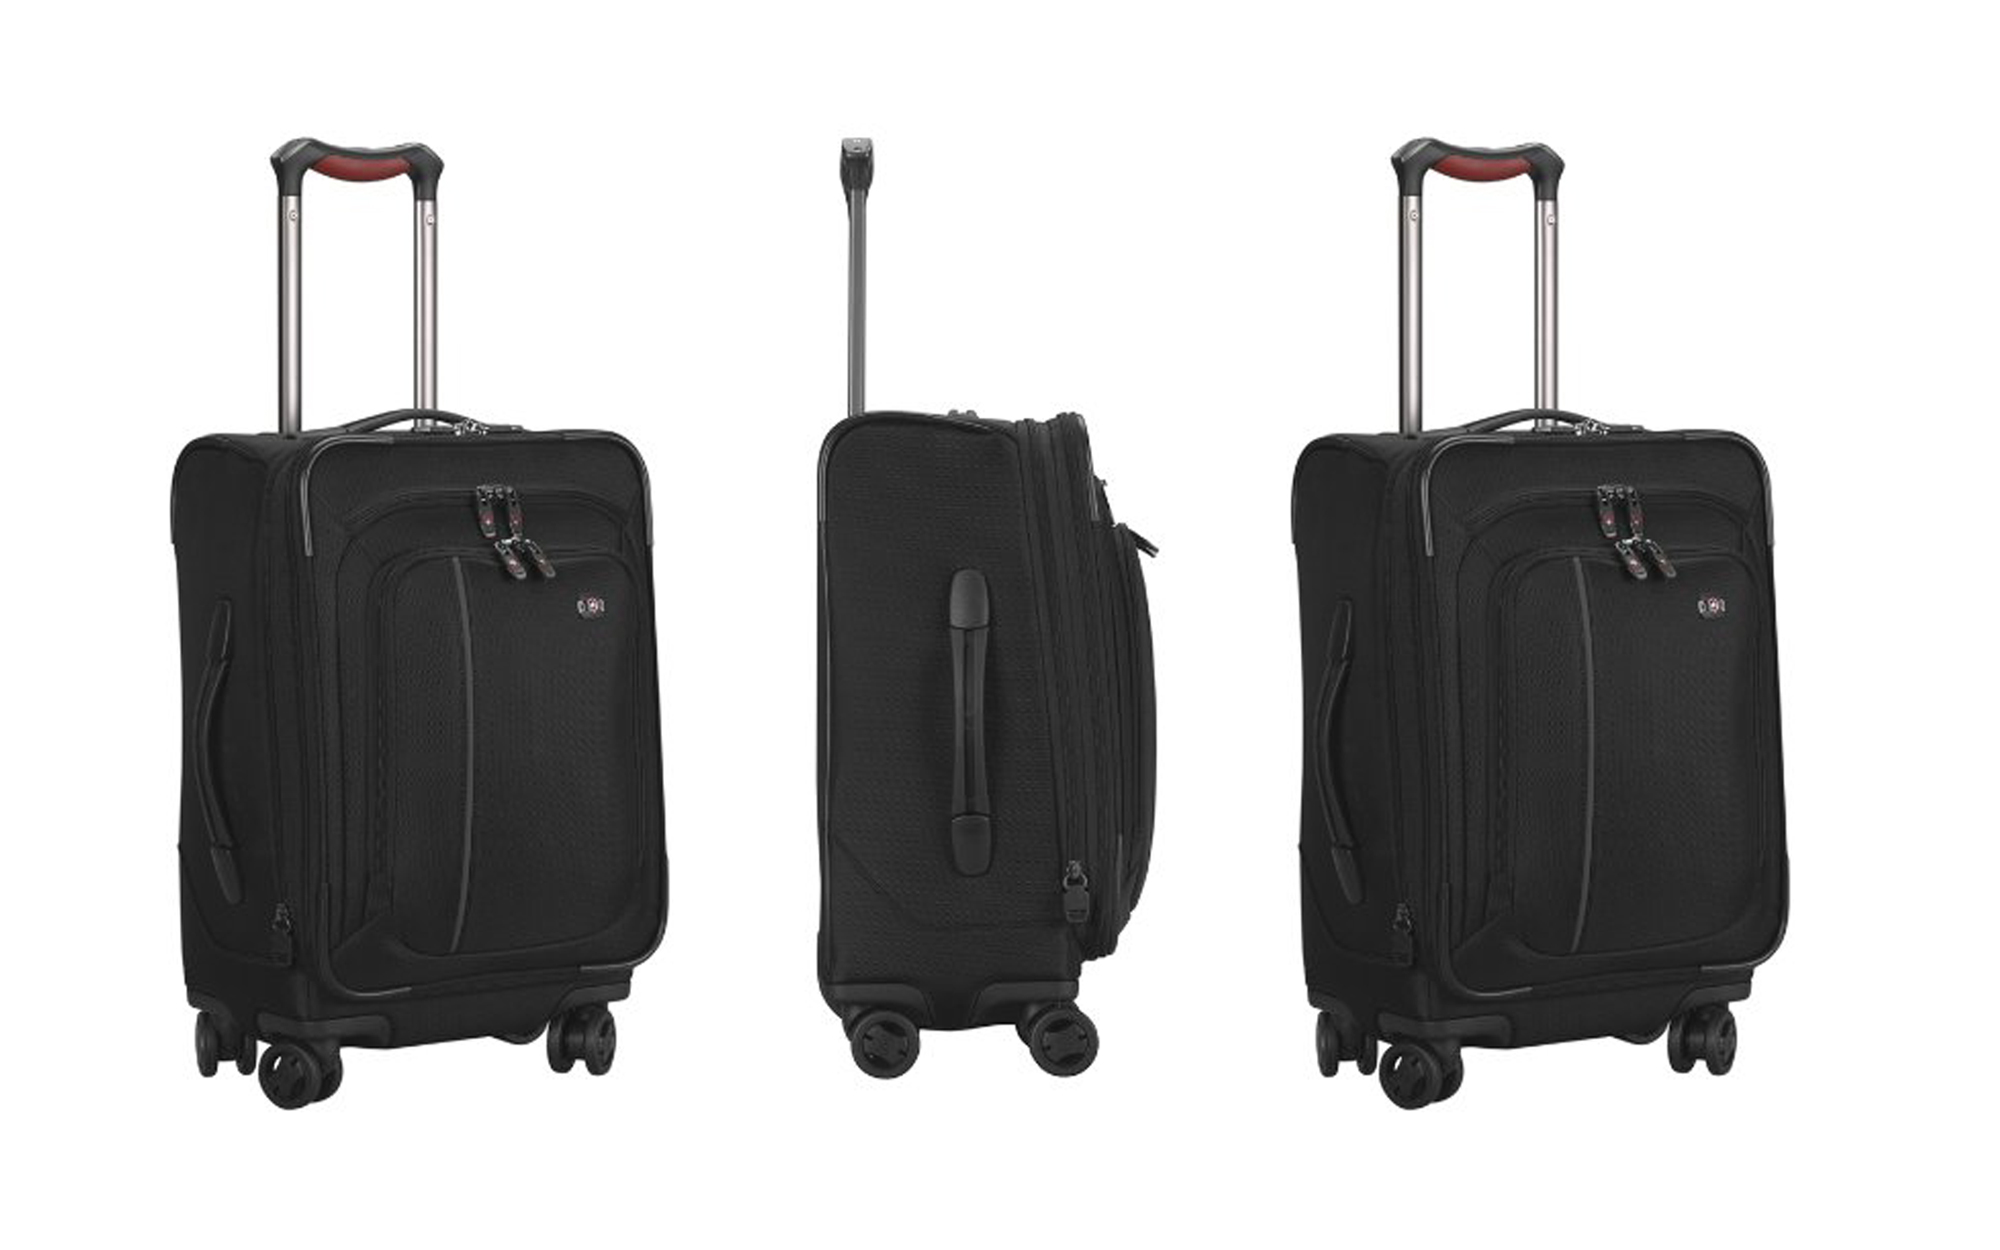 Best Carry-On Luggage for Business Travel: Victorinox Dual-caster trolley